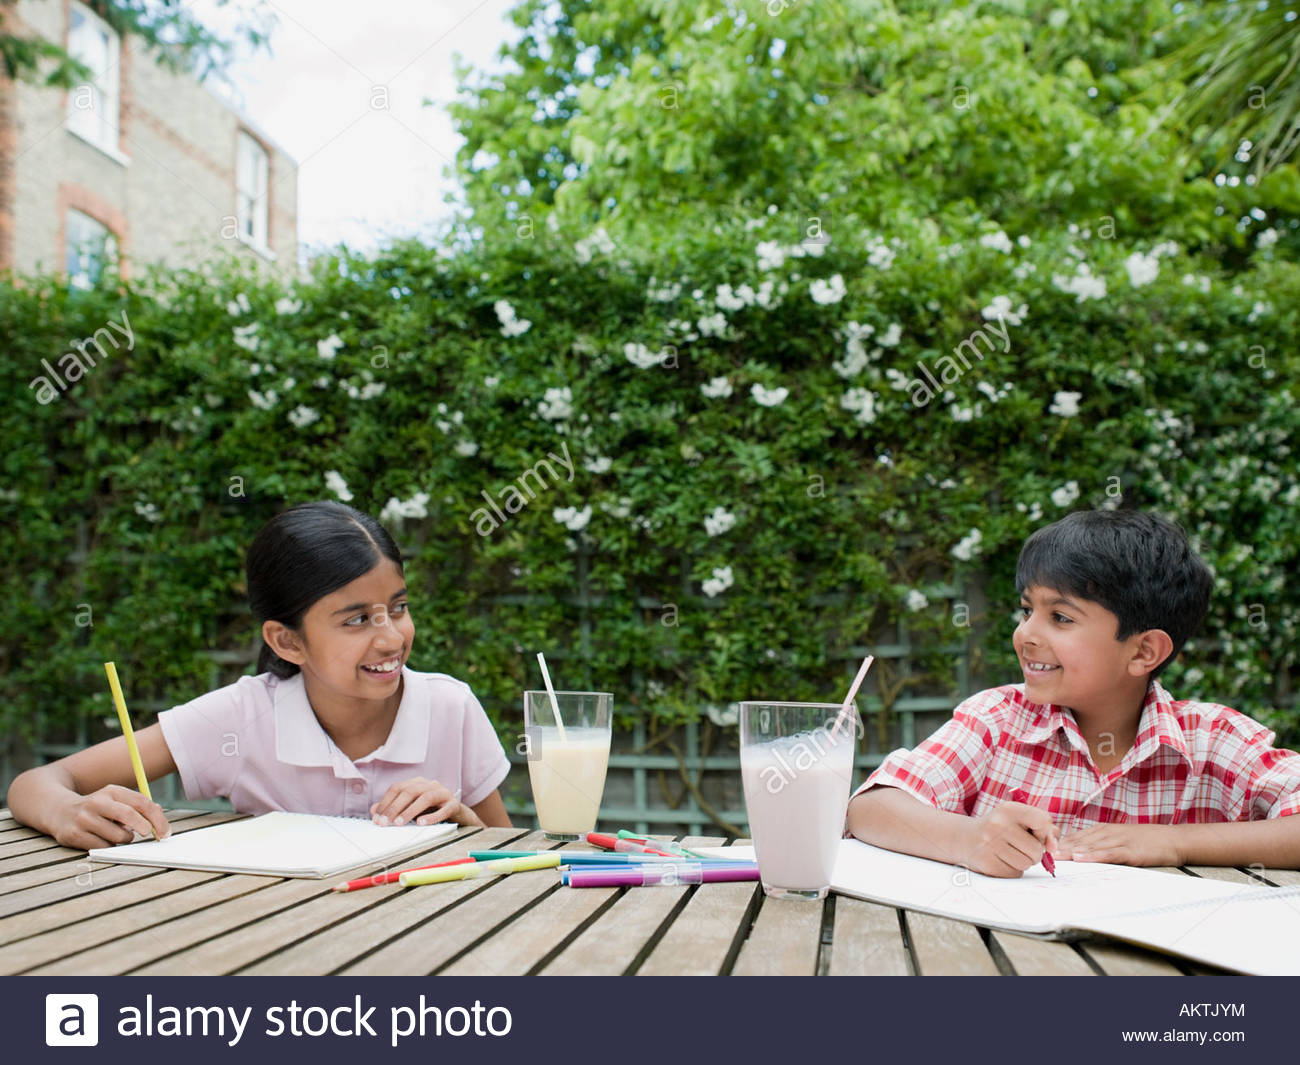 Brother and sister drawing in garden - Stock Image